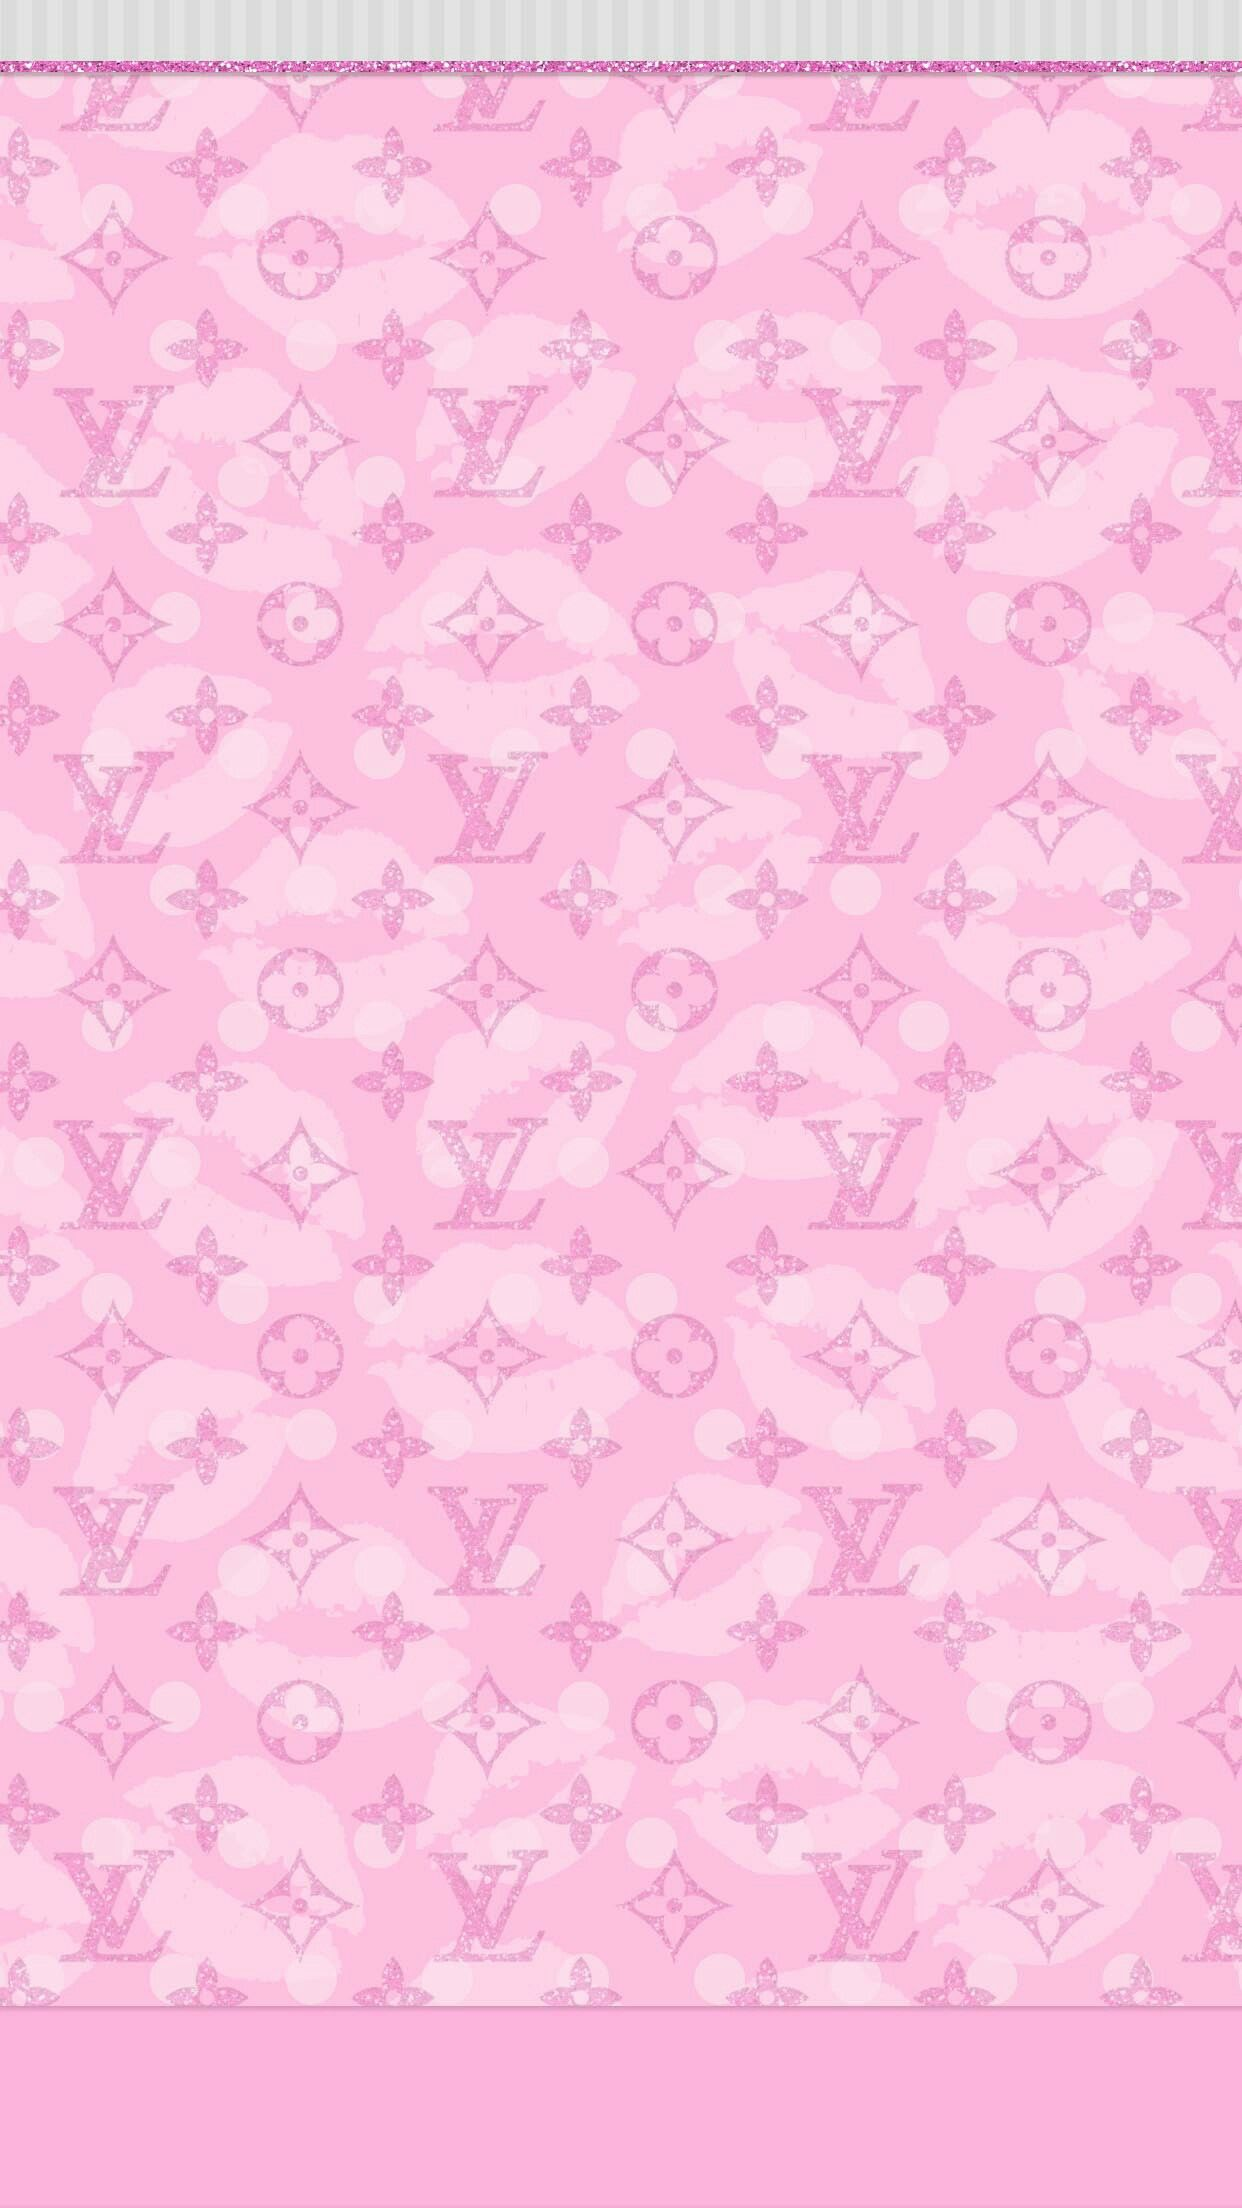 Cool Wallpaper Hello Kitty Design - 3b52ef2214ef48c8d43328868007a1f2  Best Photo Reference_757279.jpg